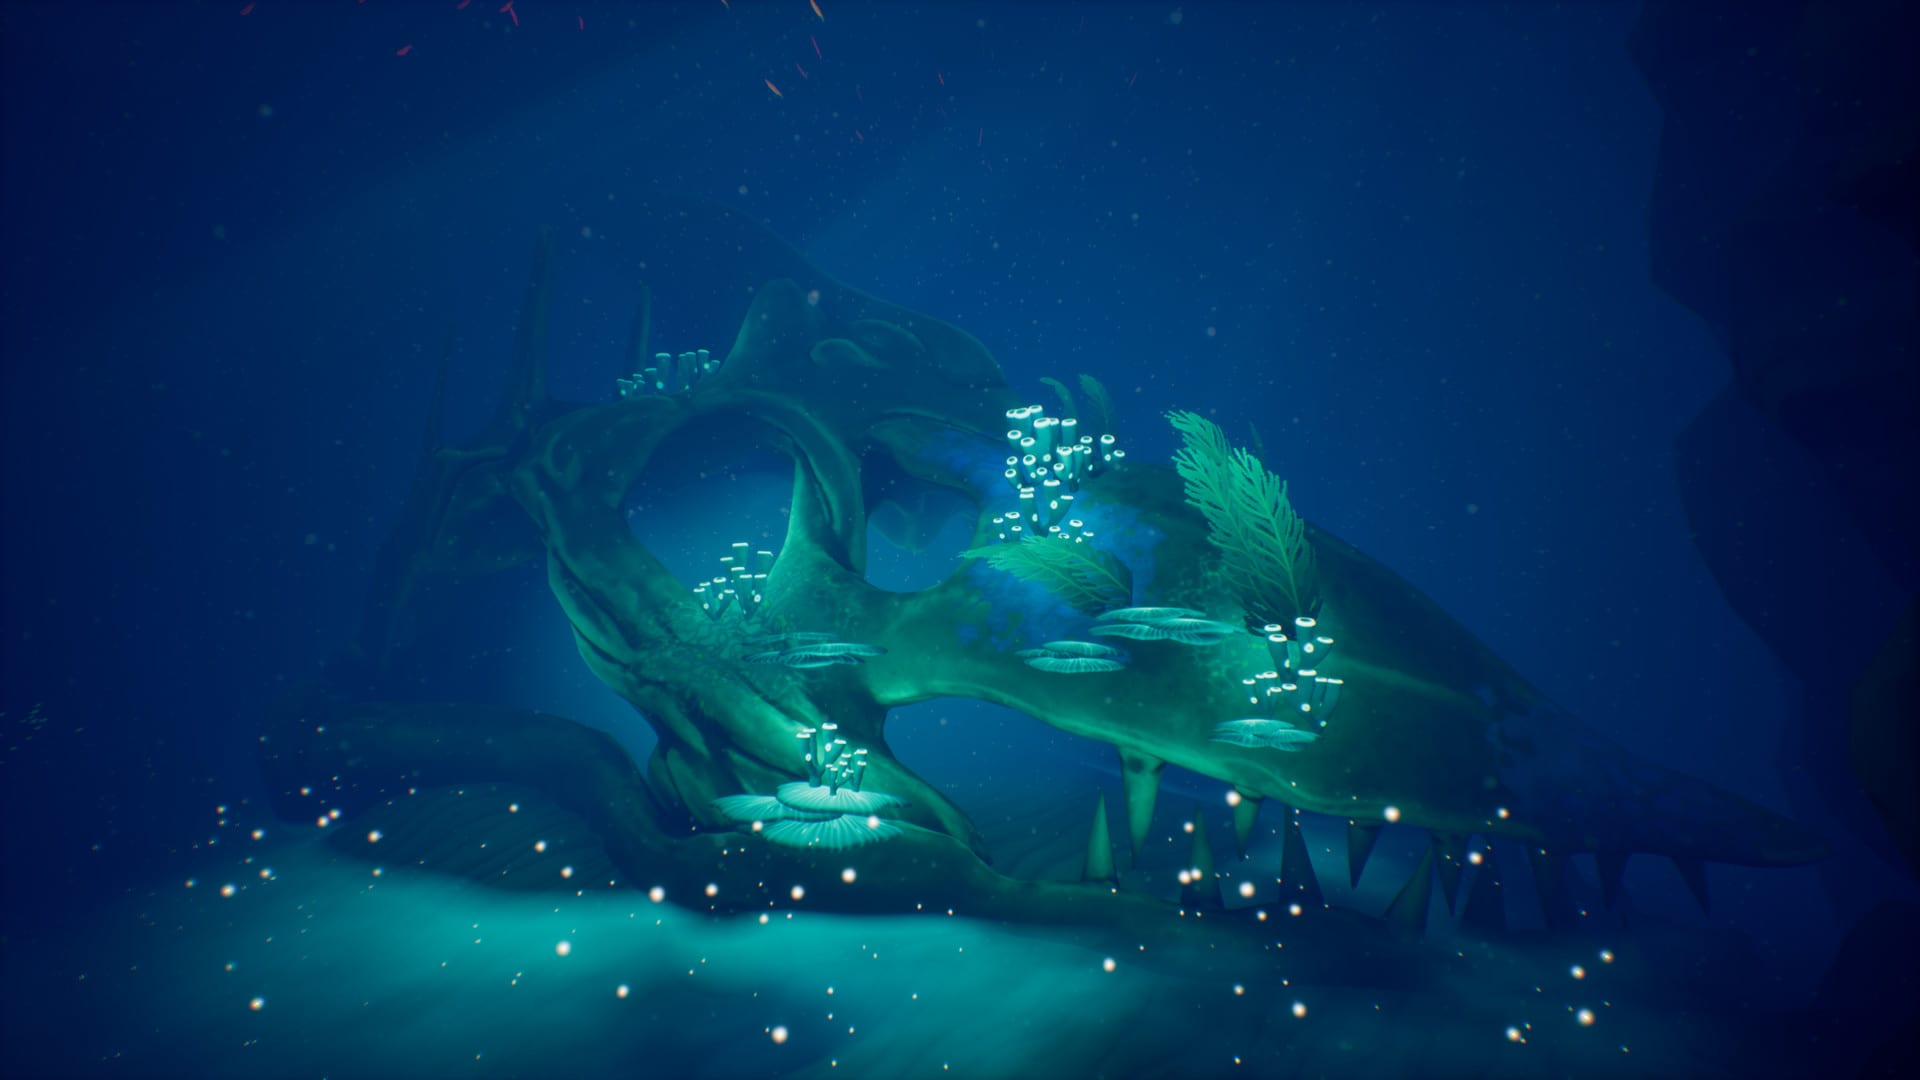 Mythic Ocean screenshot